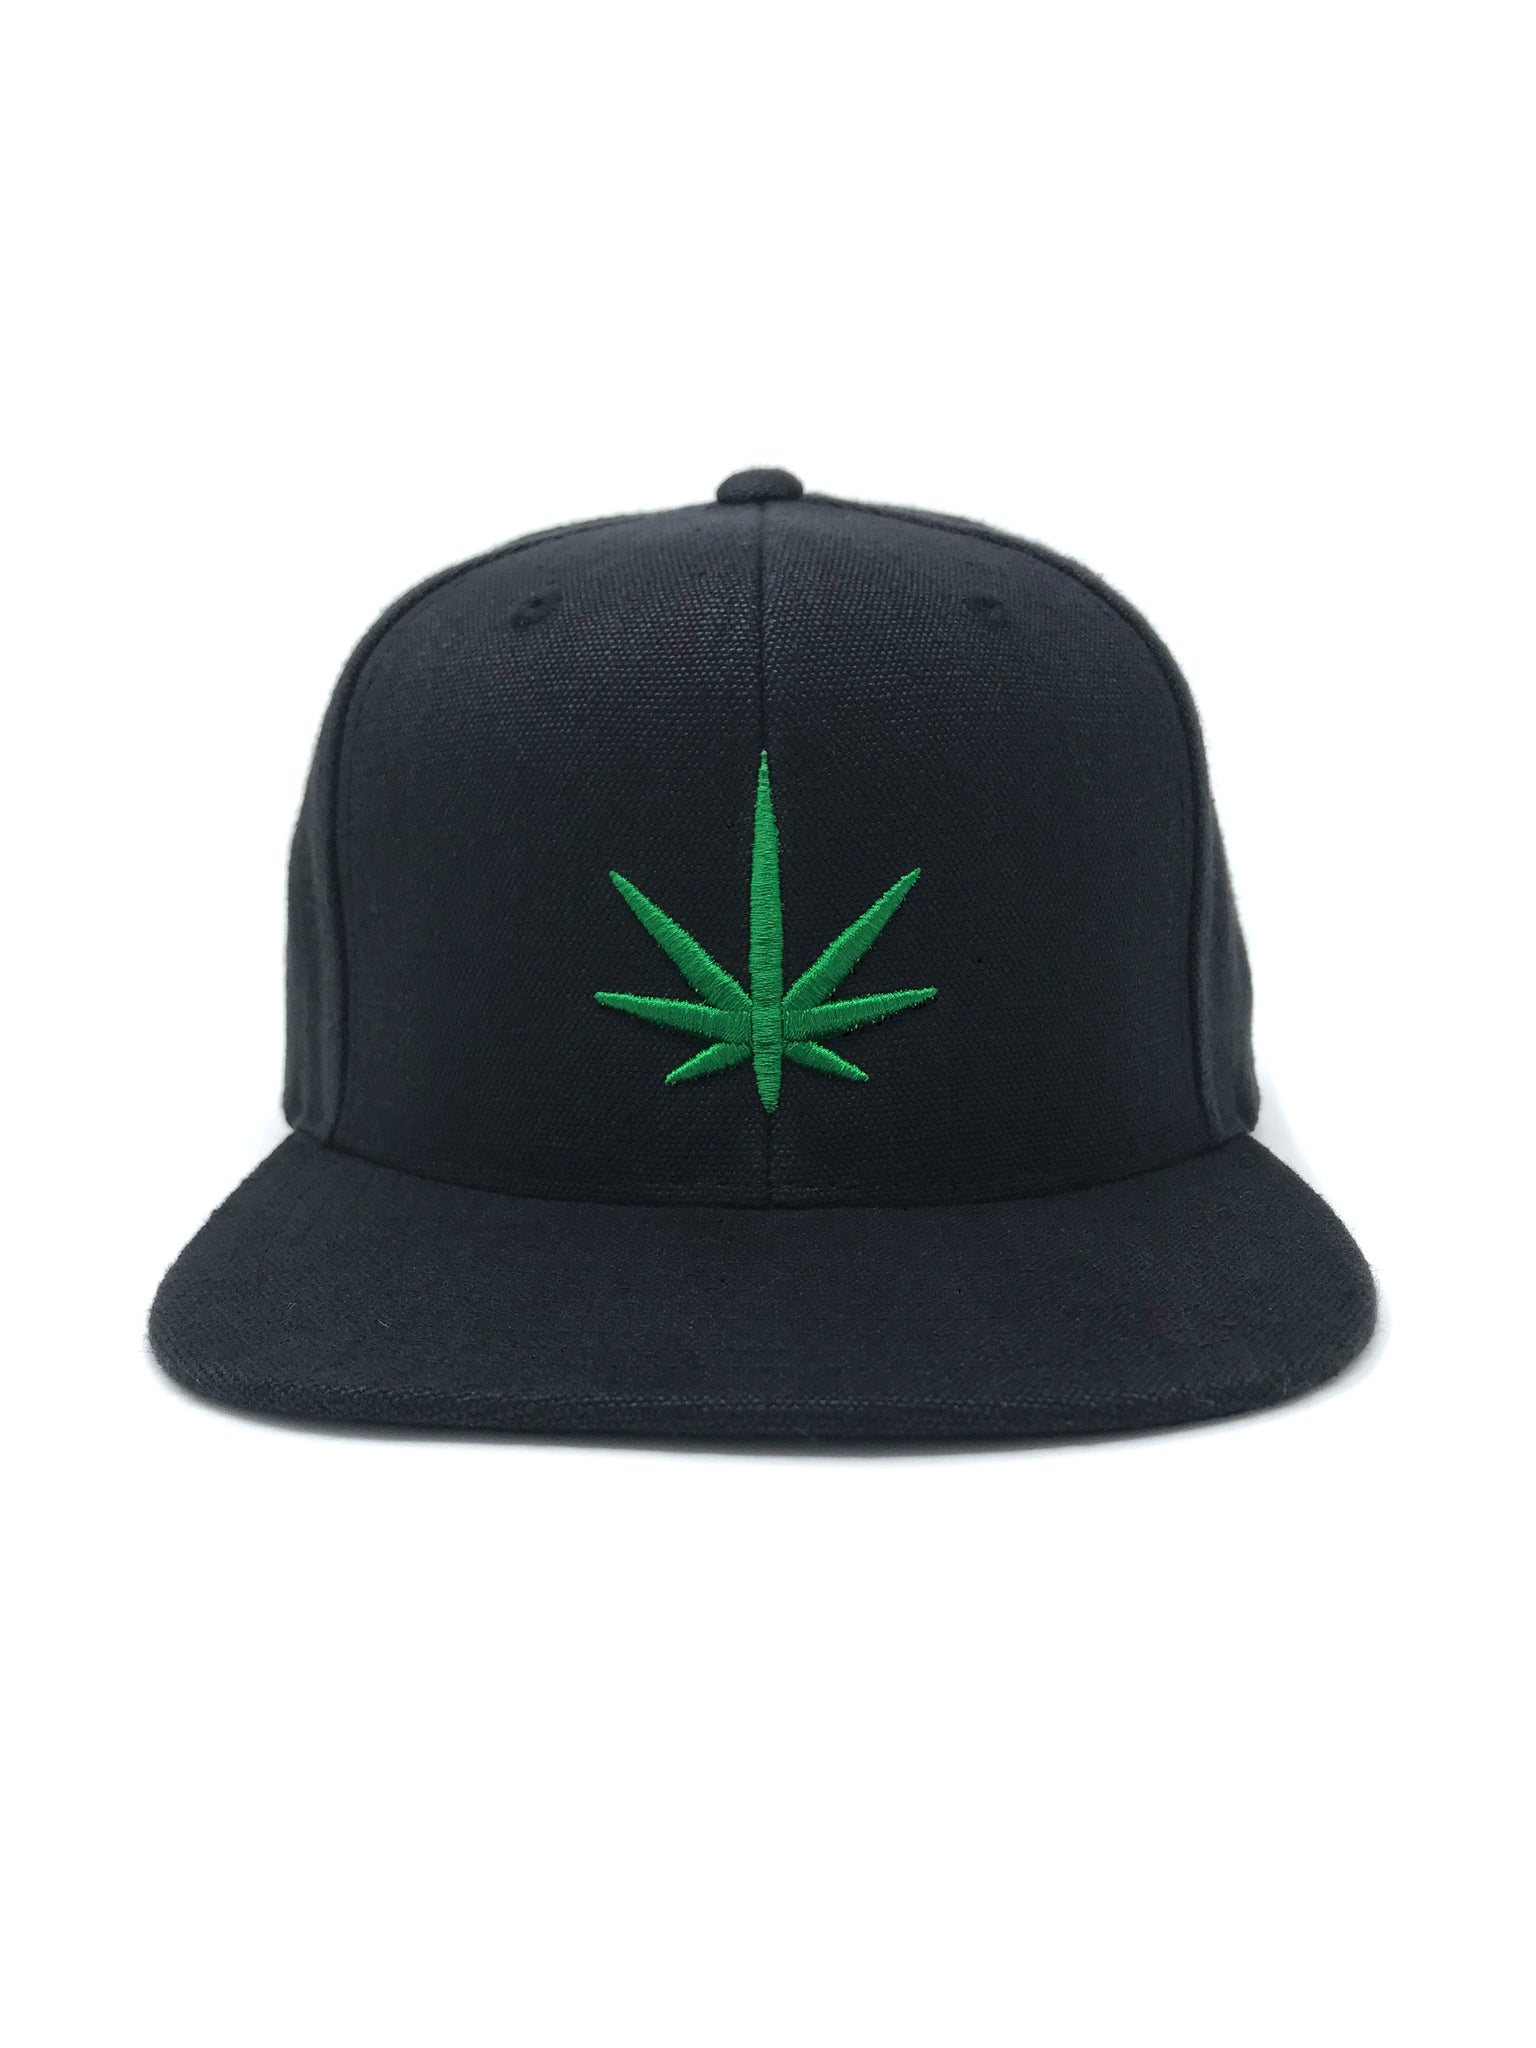 HEMPZOO Hemp Zoo GREEN LEAF organic hemp clothing in california Eco-Friendly Sustainable Hemp Hat Black Bone Natural Organic Cap Recycled Poly mesh Flexfit Arch trucker Headwear Cannabis fashion